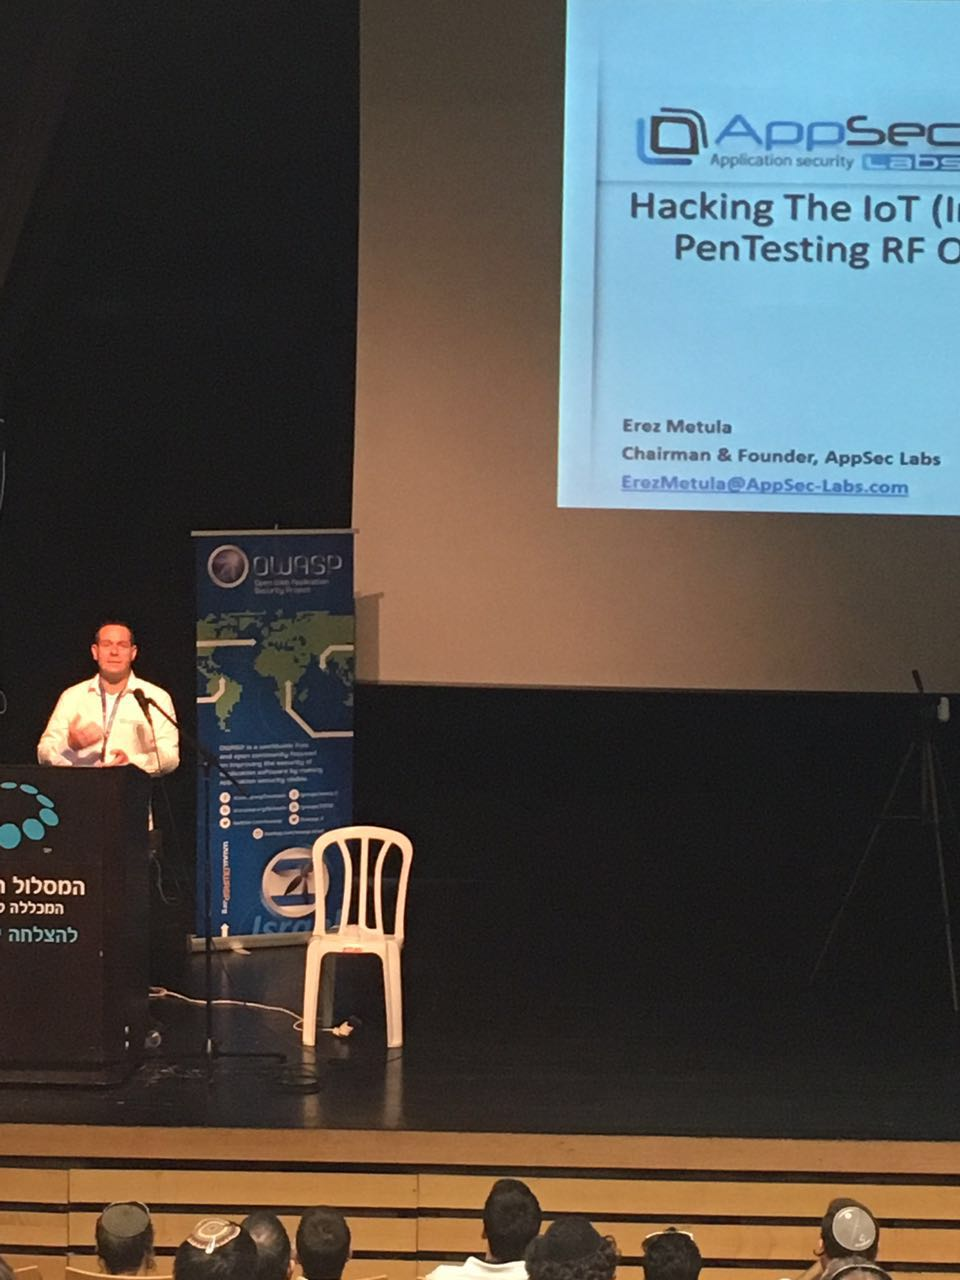 Owasp Internet Of Things Project: AppSec Labs